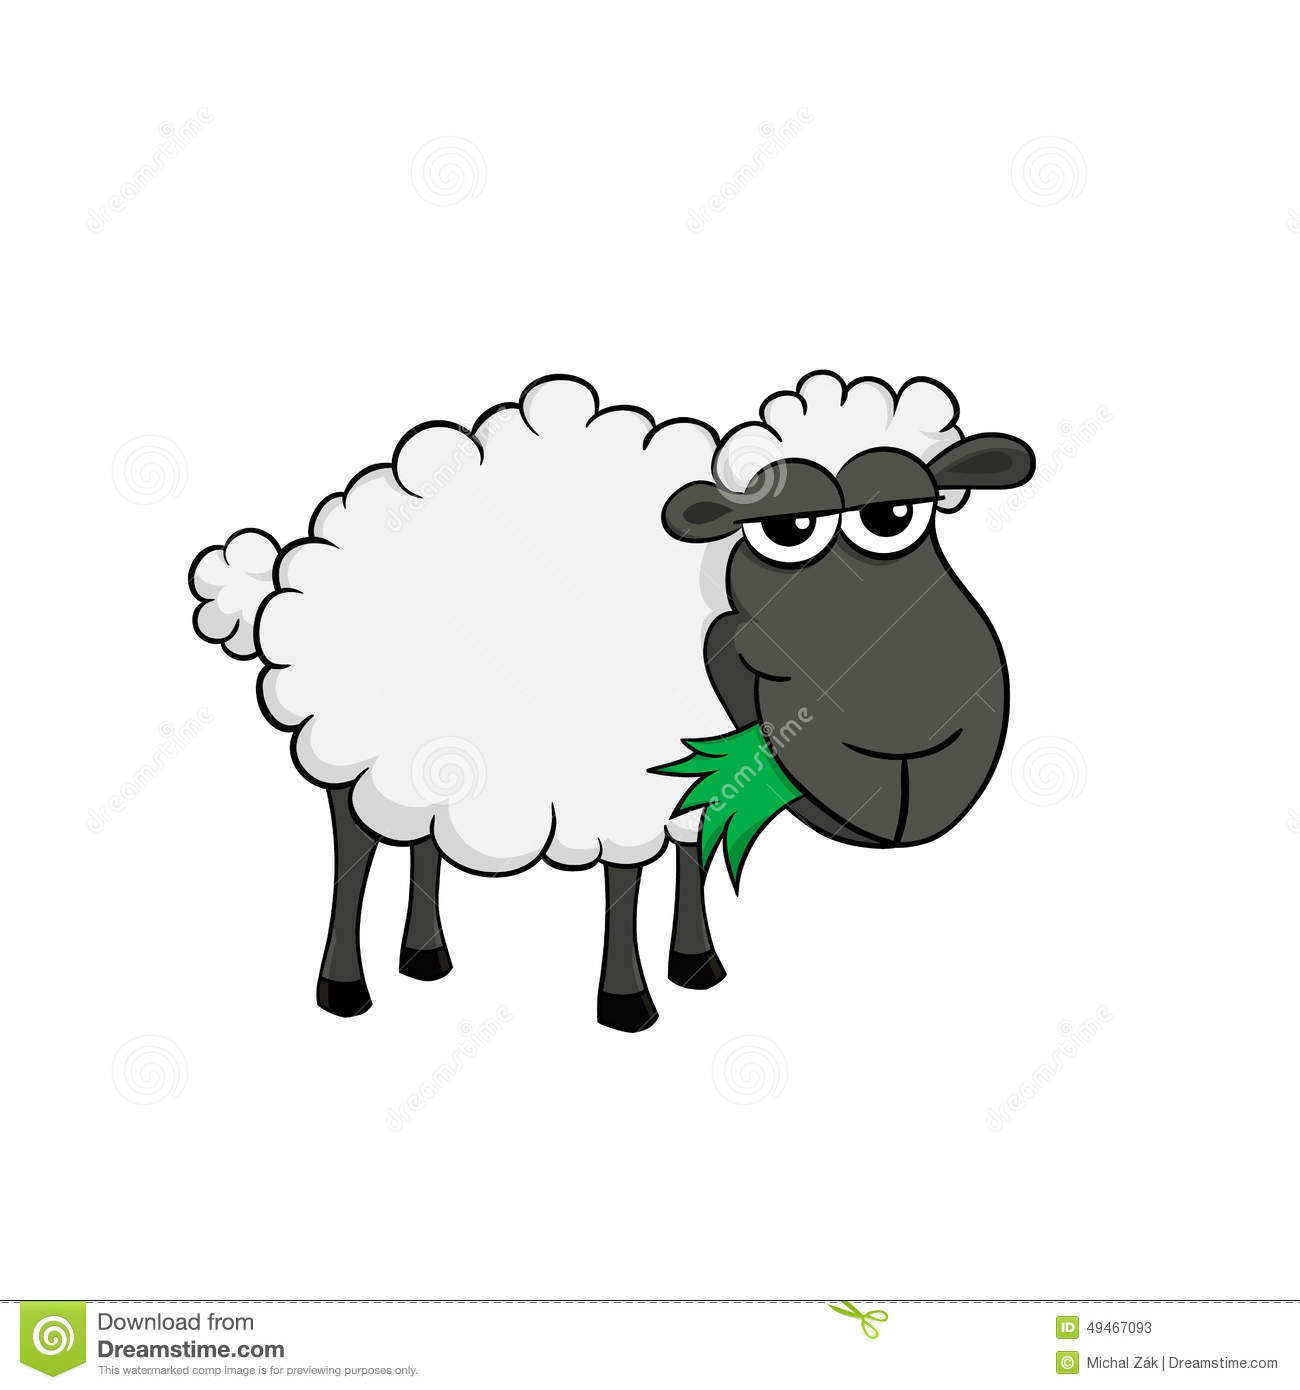 ... Of A Cartoon Sheep Eating Grass Stock Vector - Image: 49467093